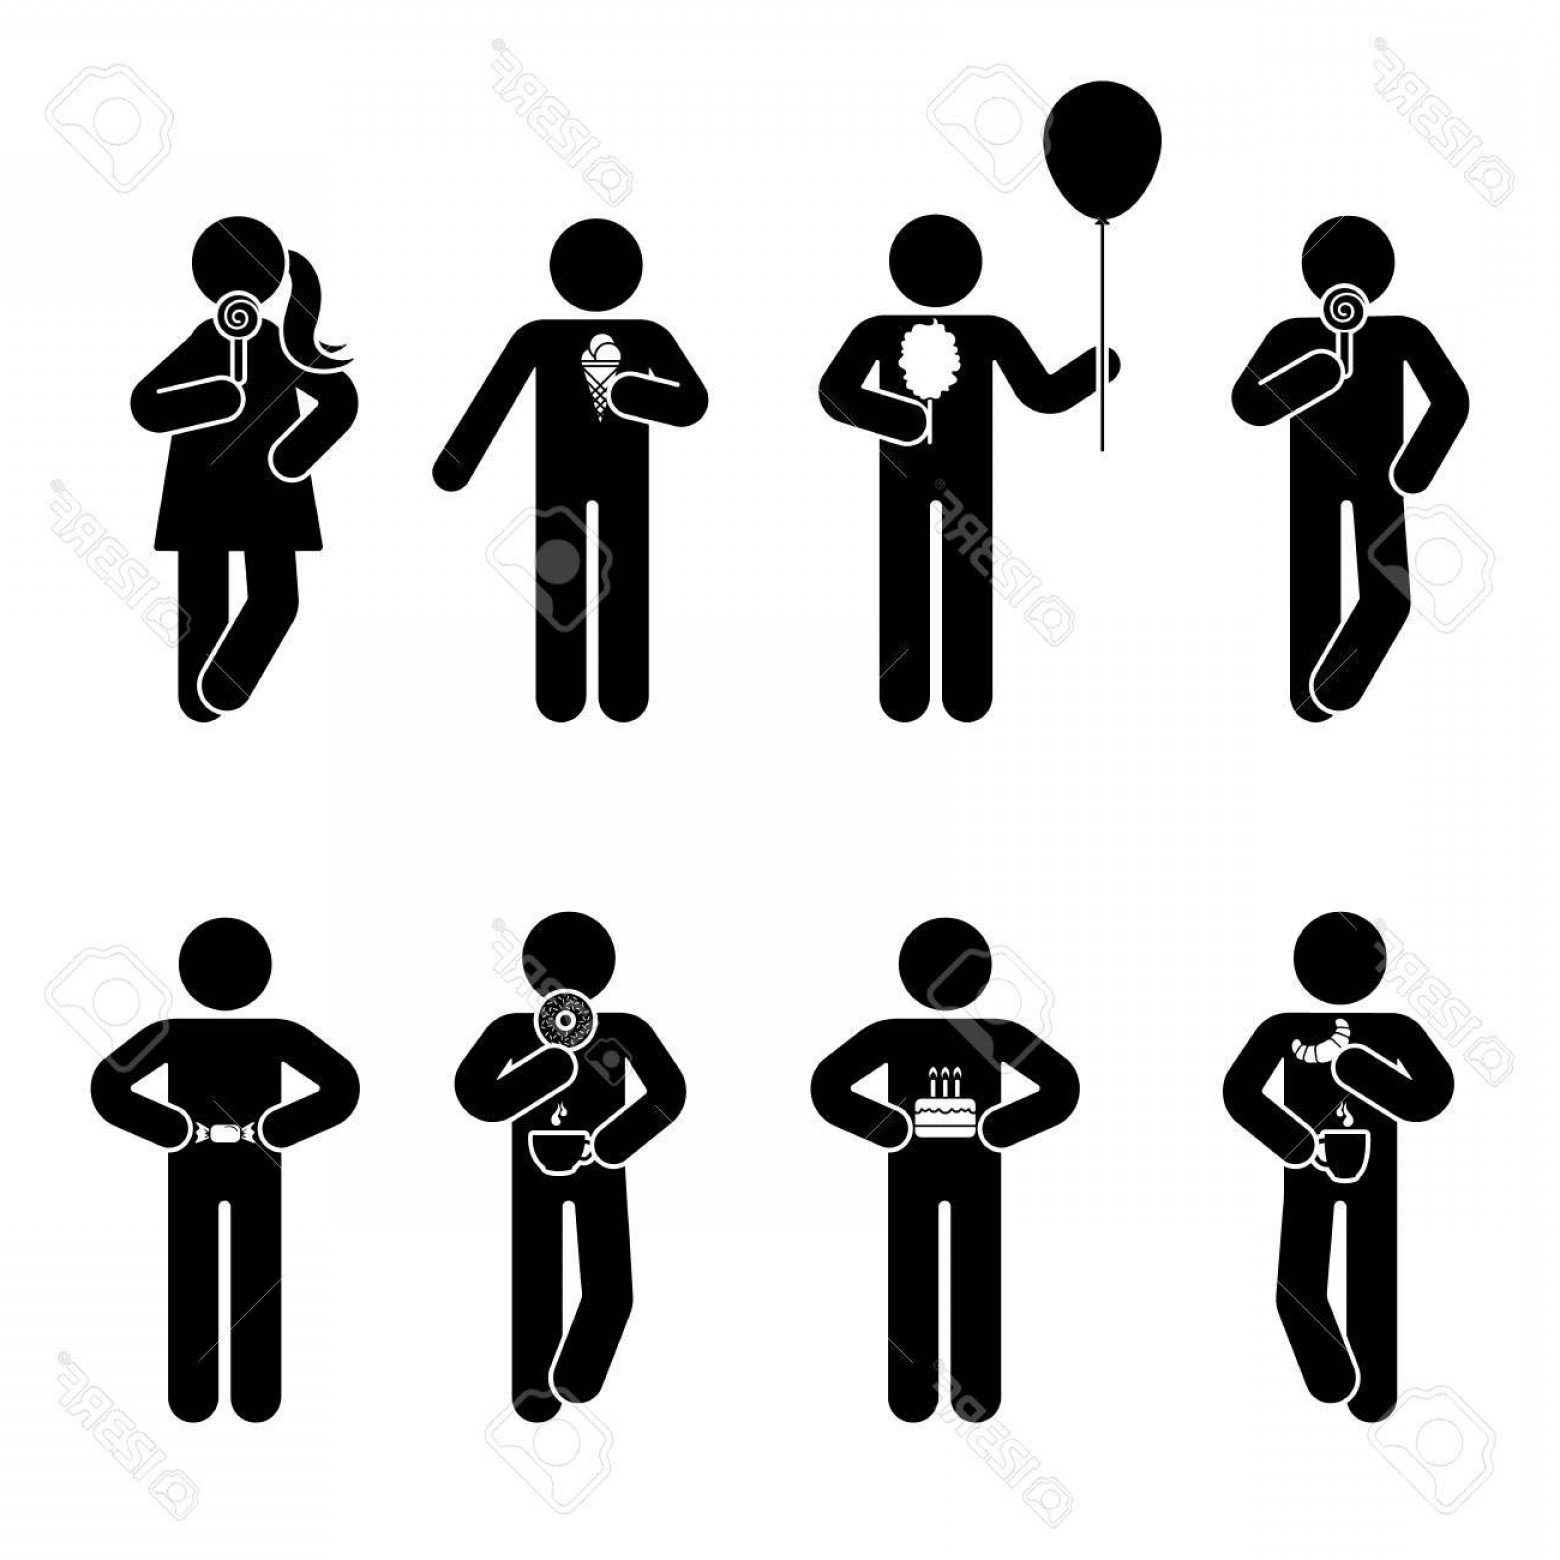 Stick Figure Positions Vector Set: Photostock Vector Stick Figure Different Eating Position Set Vector Illustration Of Snack Person Icon Symbol Sign Pict